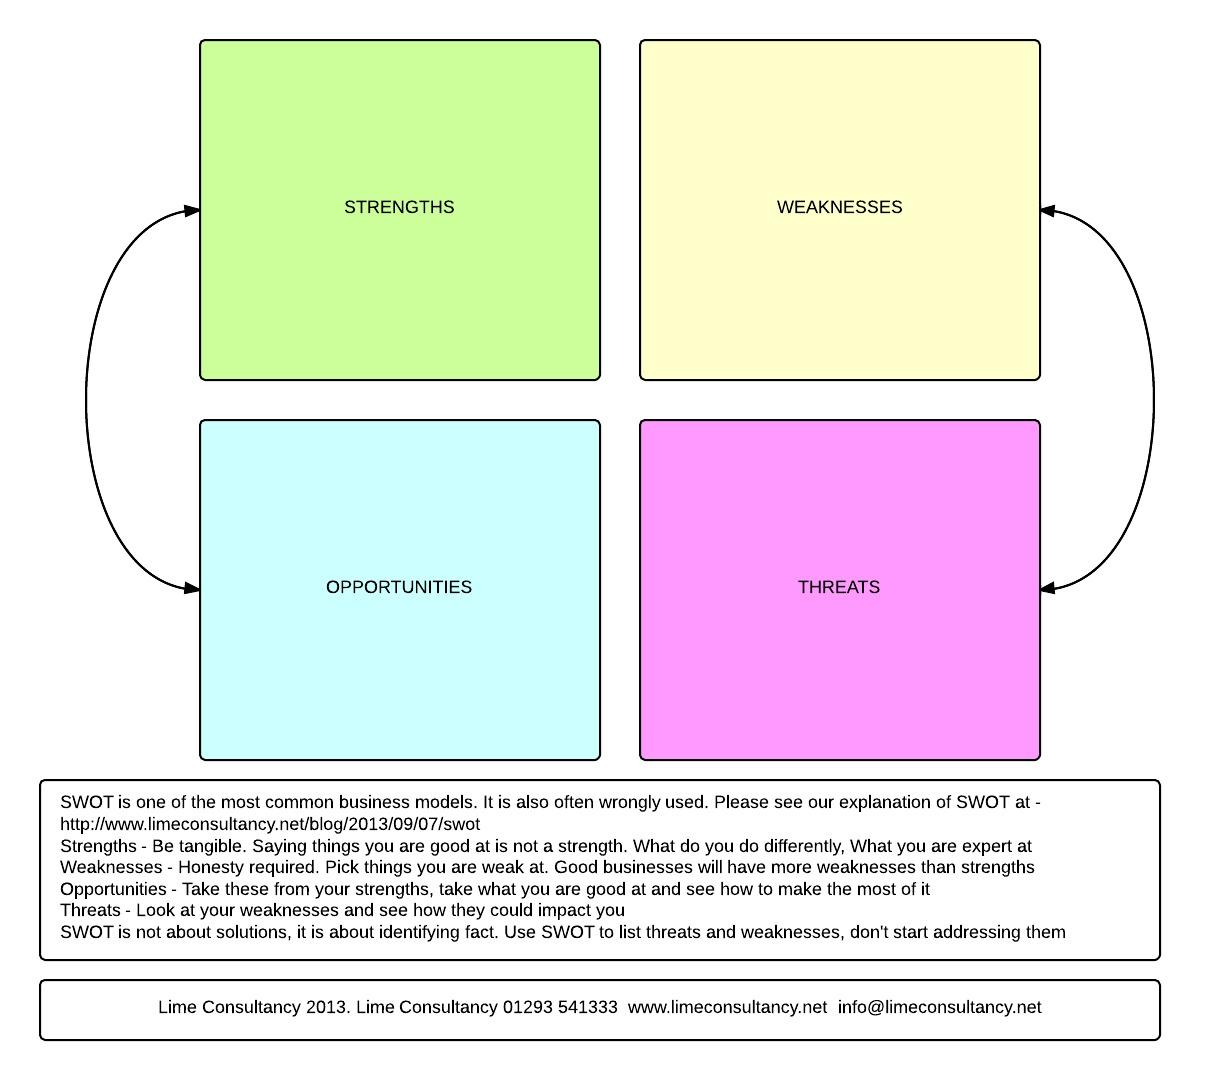 the use of a swot analysis Swot analysis using swot diagrams or matrices is a key part of any business planning or analysis swot stands for strengths, weaknesses, opportunities, and threats strengths and weaknesses are internal factors and opportunities and threats are external factors.